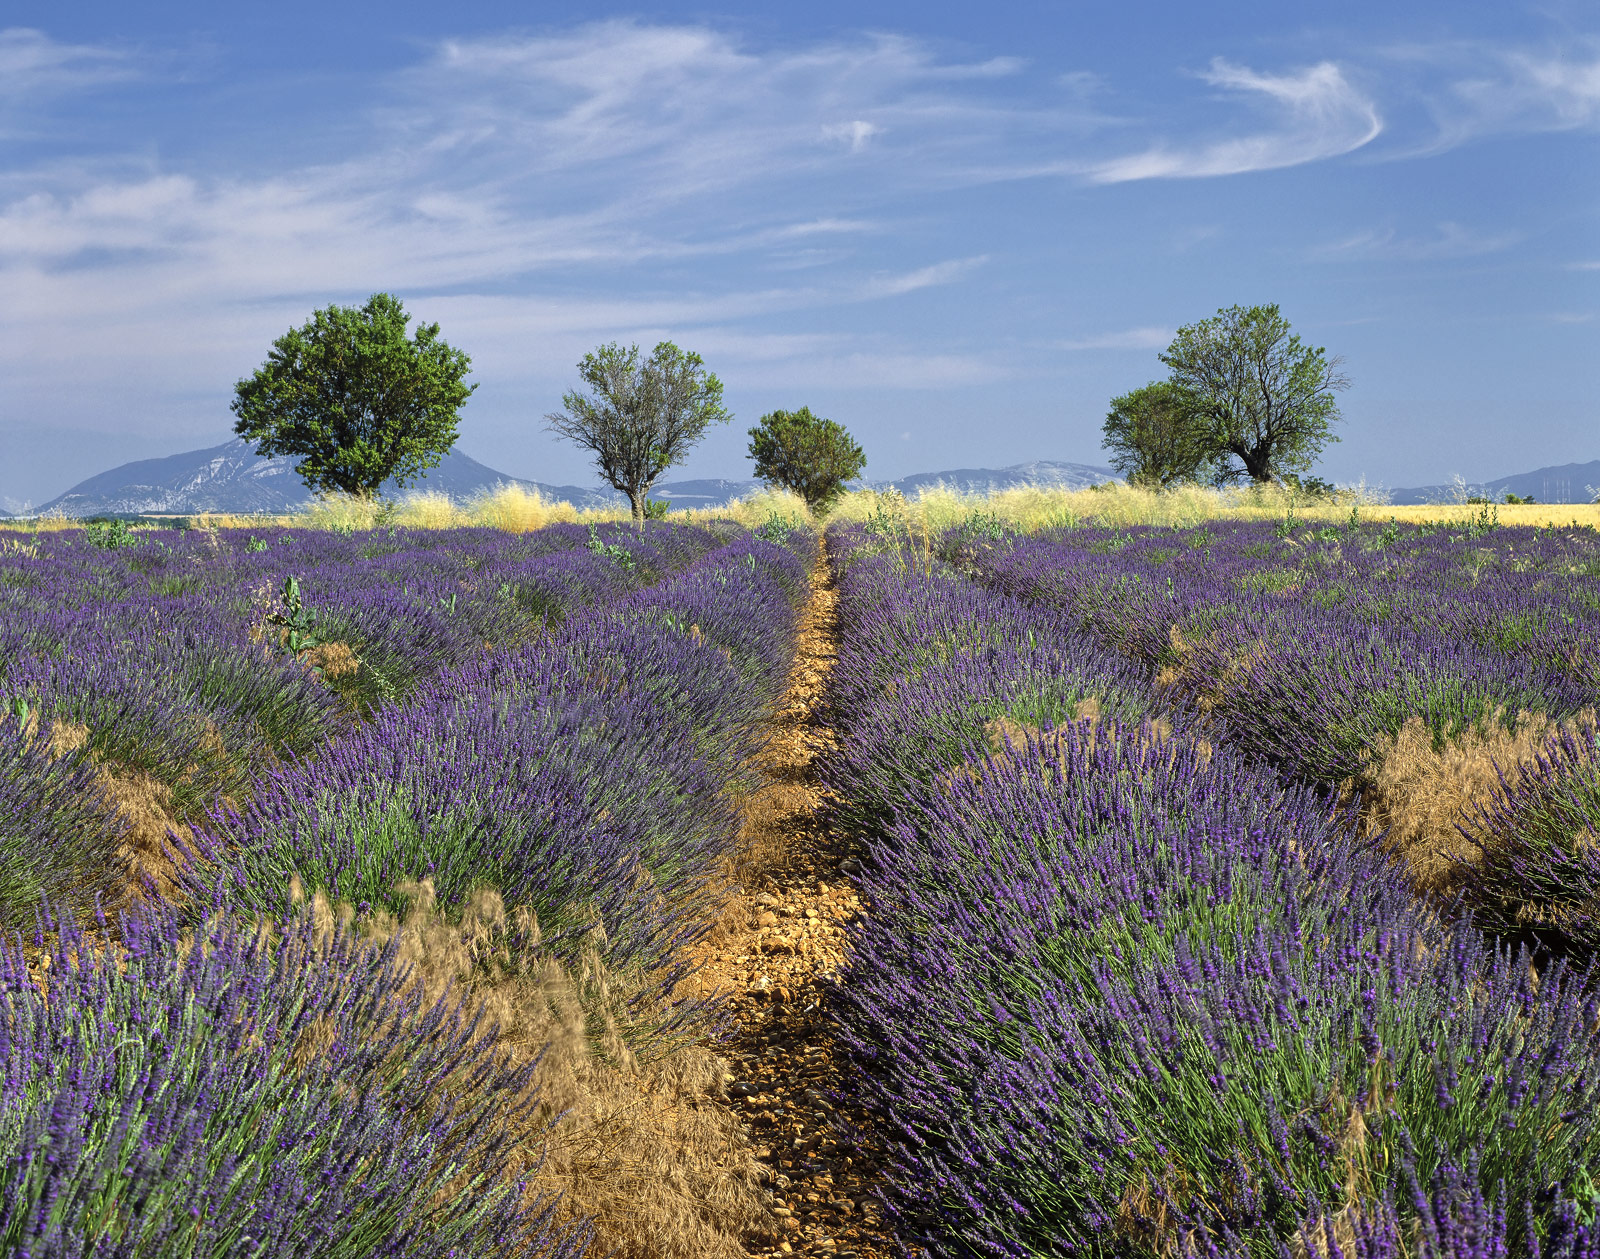 The best quality and most aromatic lavender grows on the high plateaus of the Provencal plains. It is dry and has plentiful...